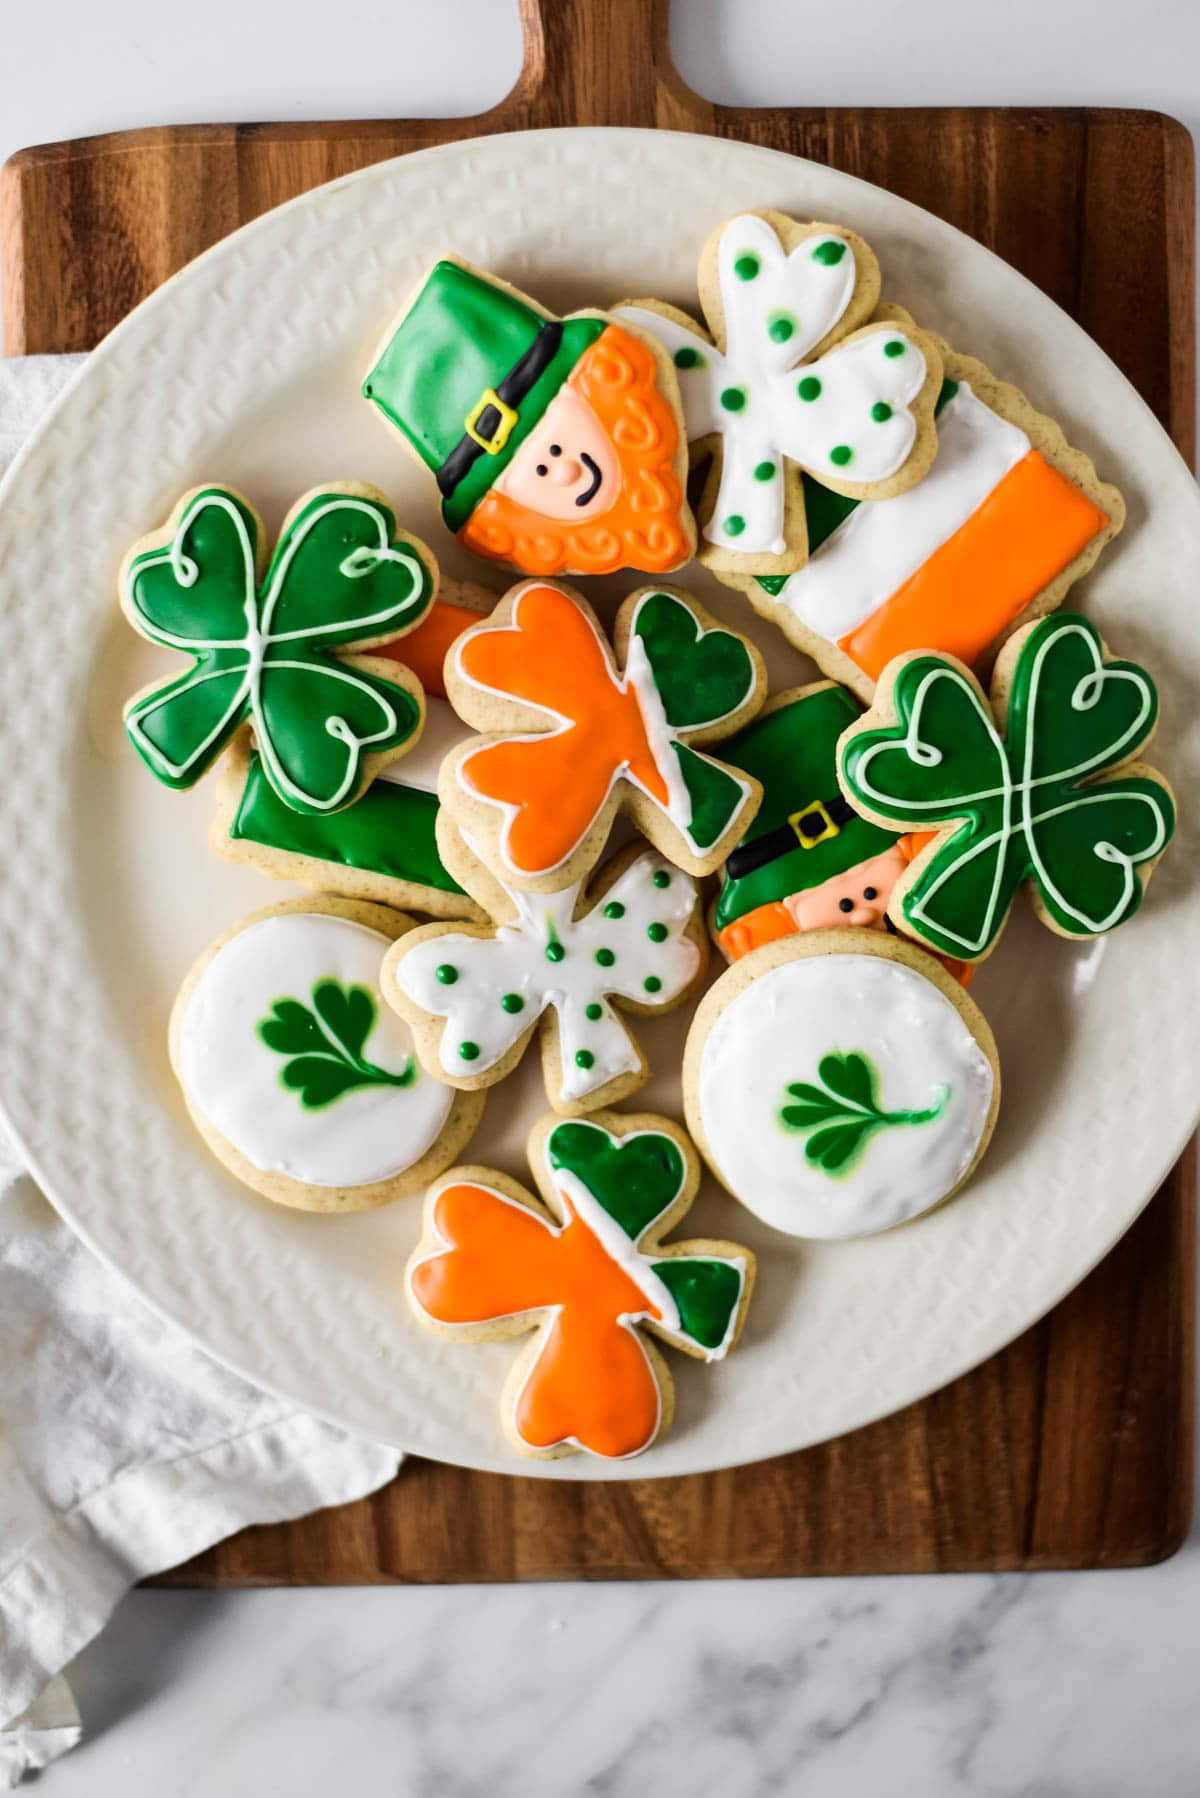 cut out cookies made with sourdough starter decorated for St Patricks Day